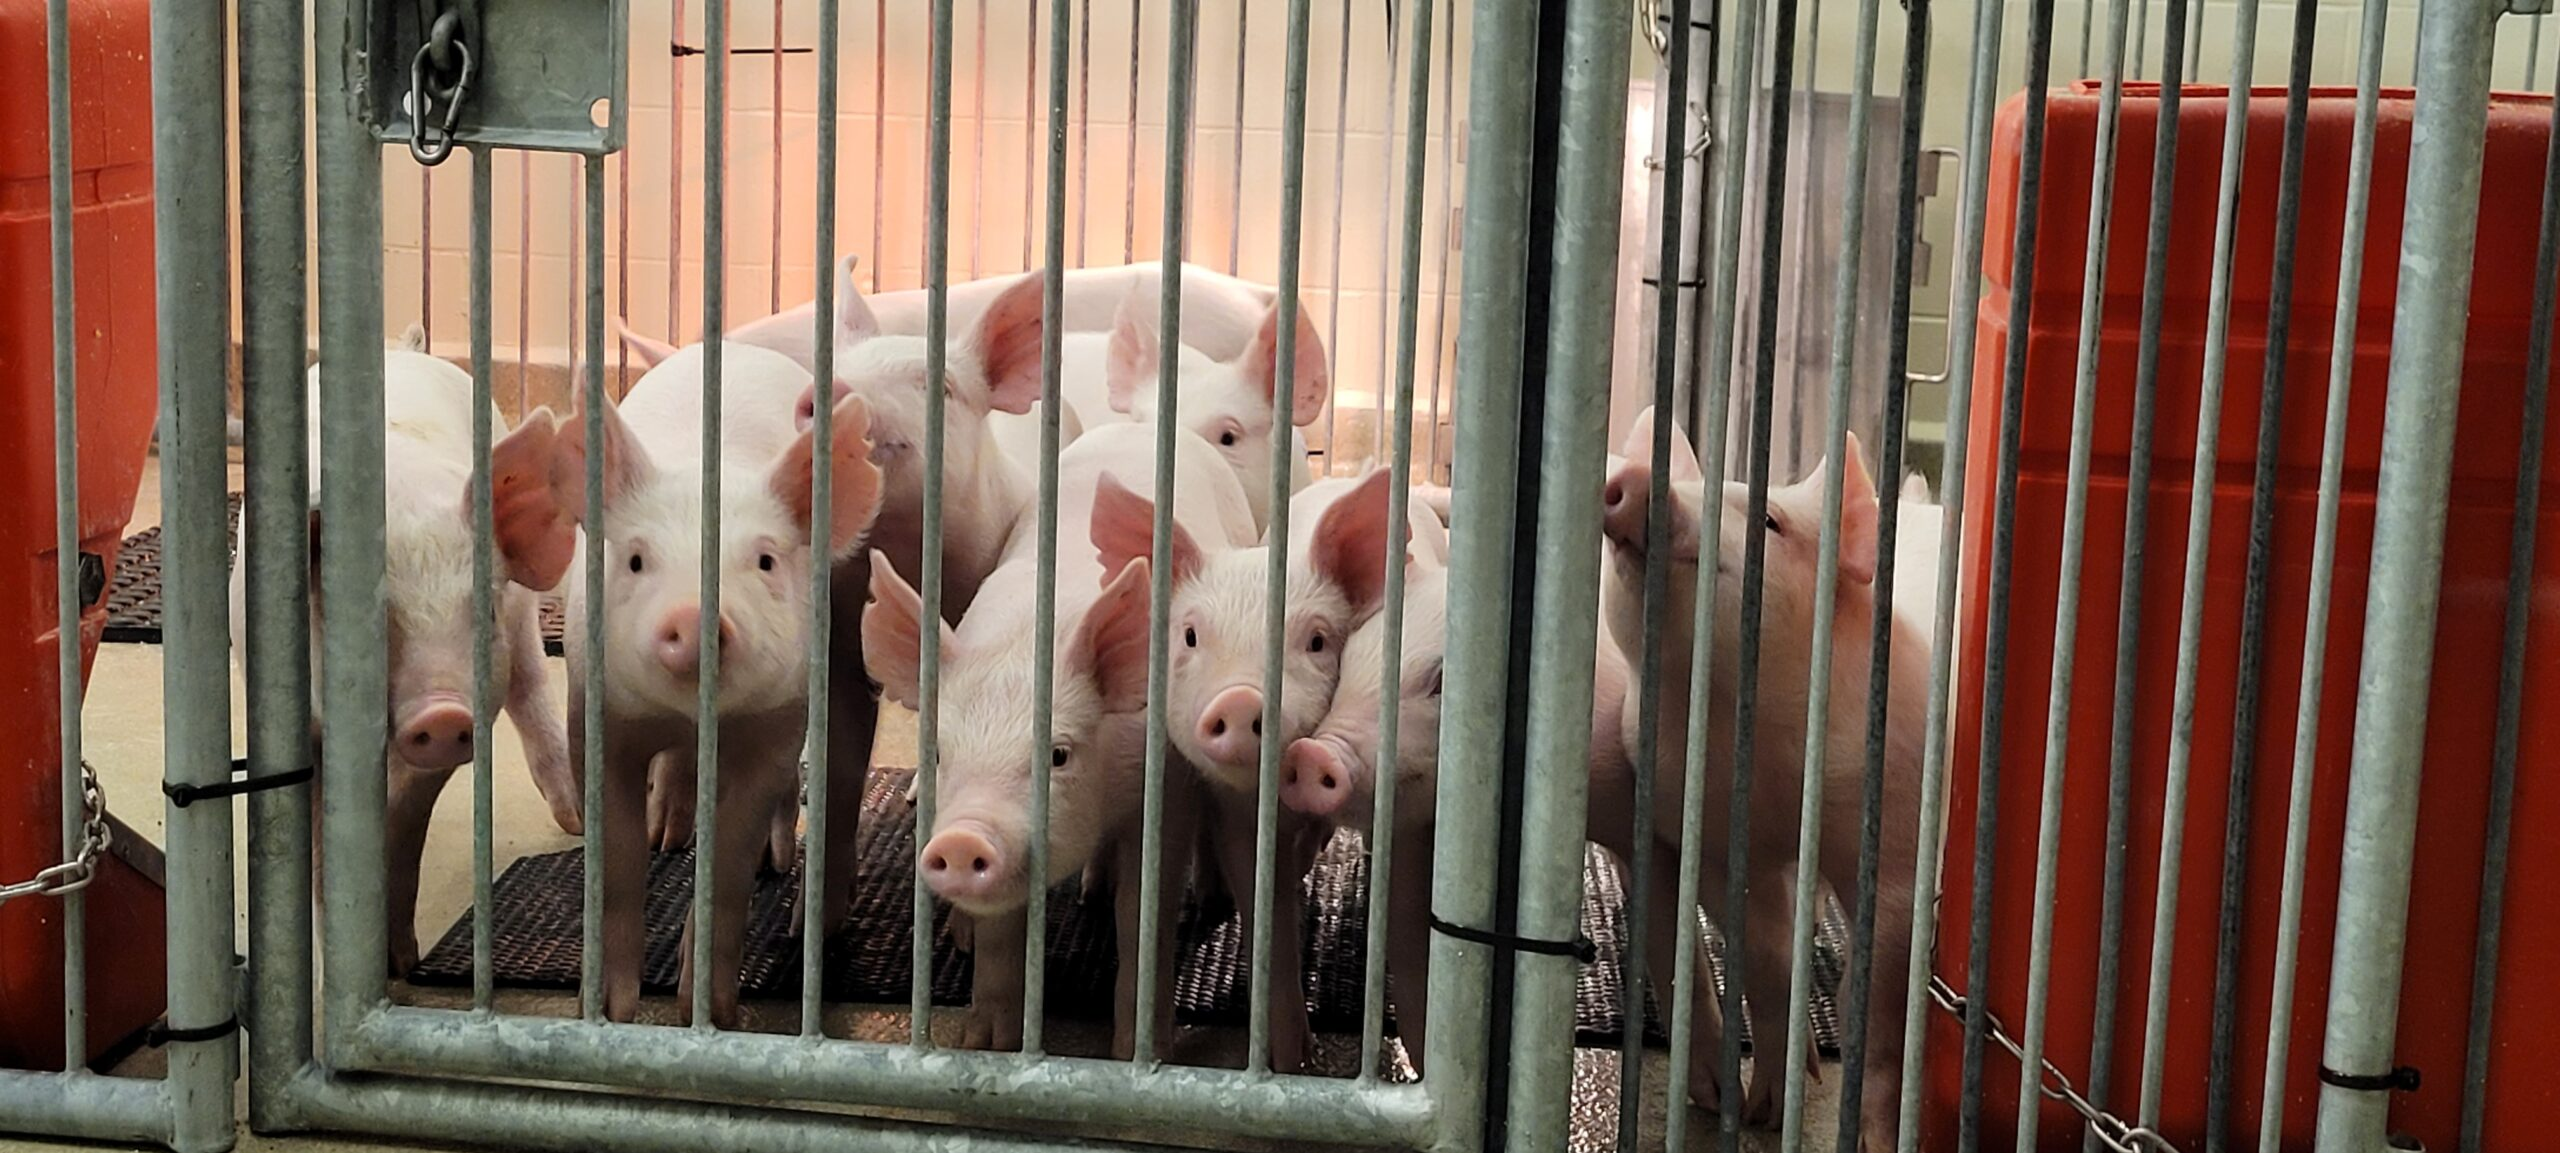 We're creating 'humanized pigs' in our ultraclean lab to study human illnesses and treatments